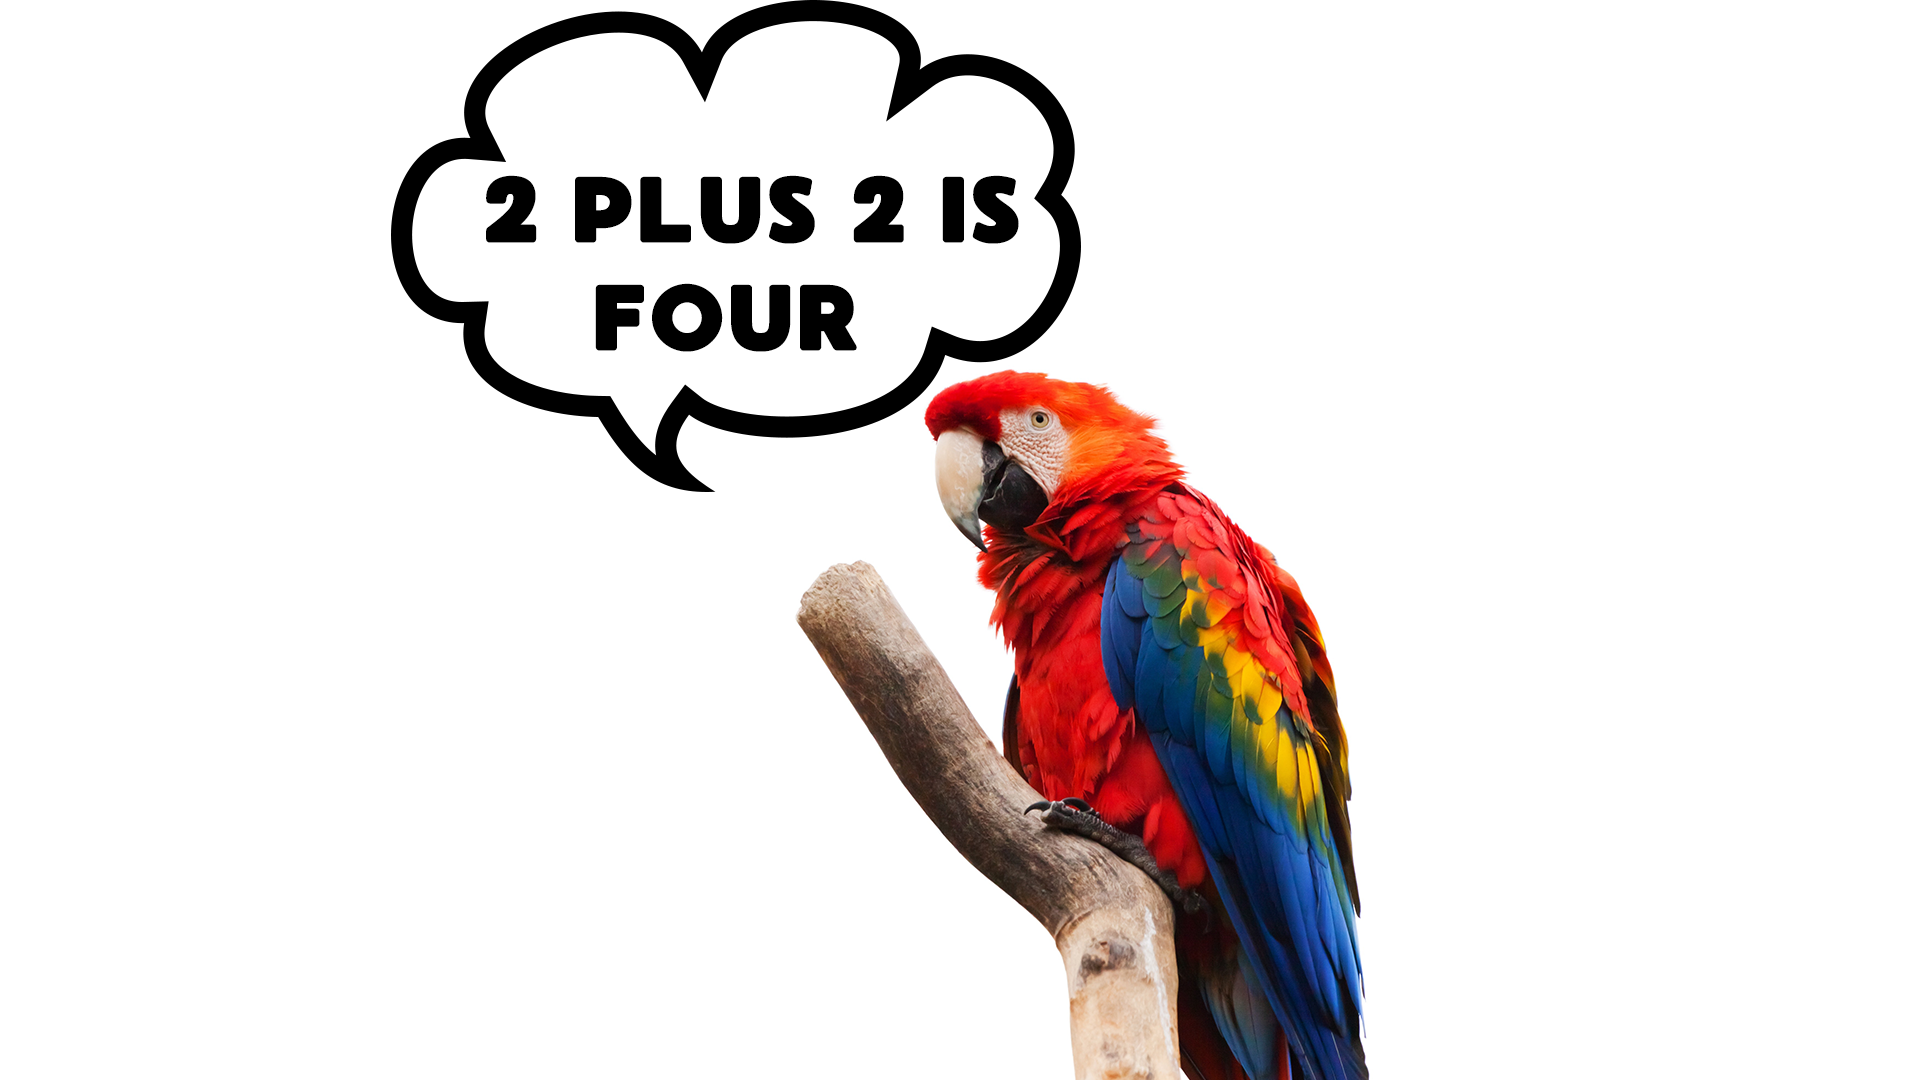 parrots don't fit into the workplace